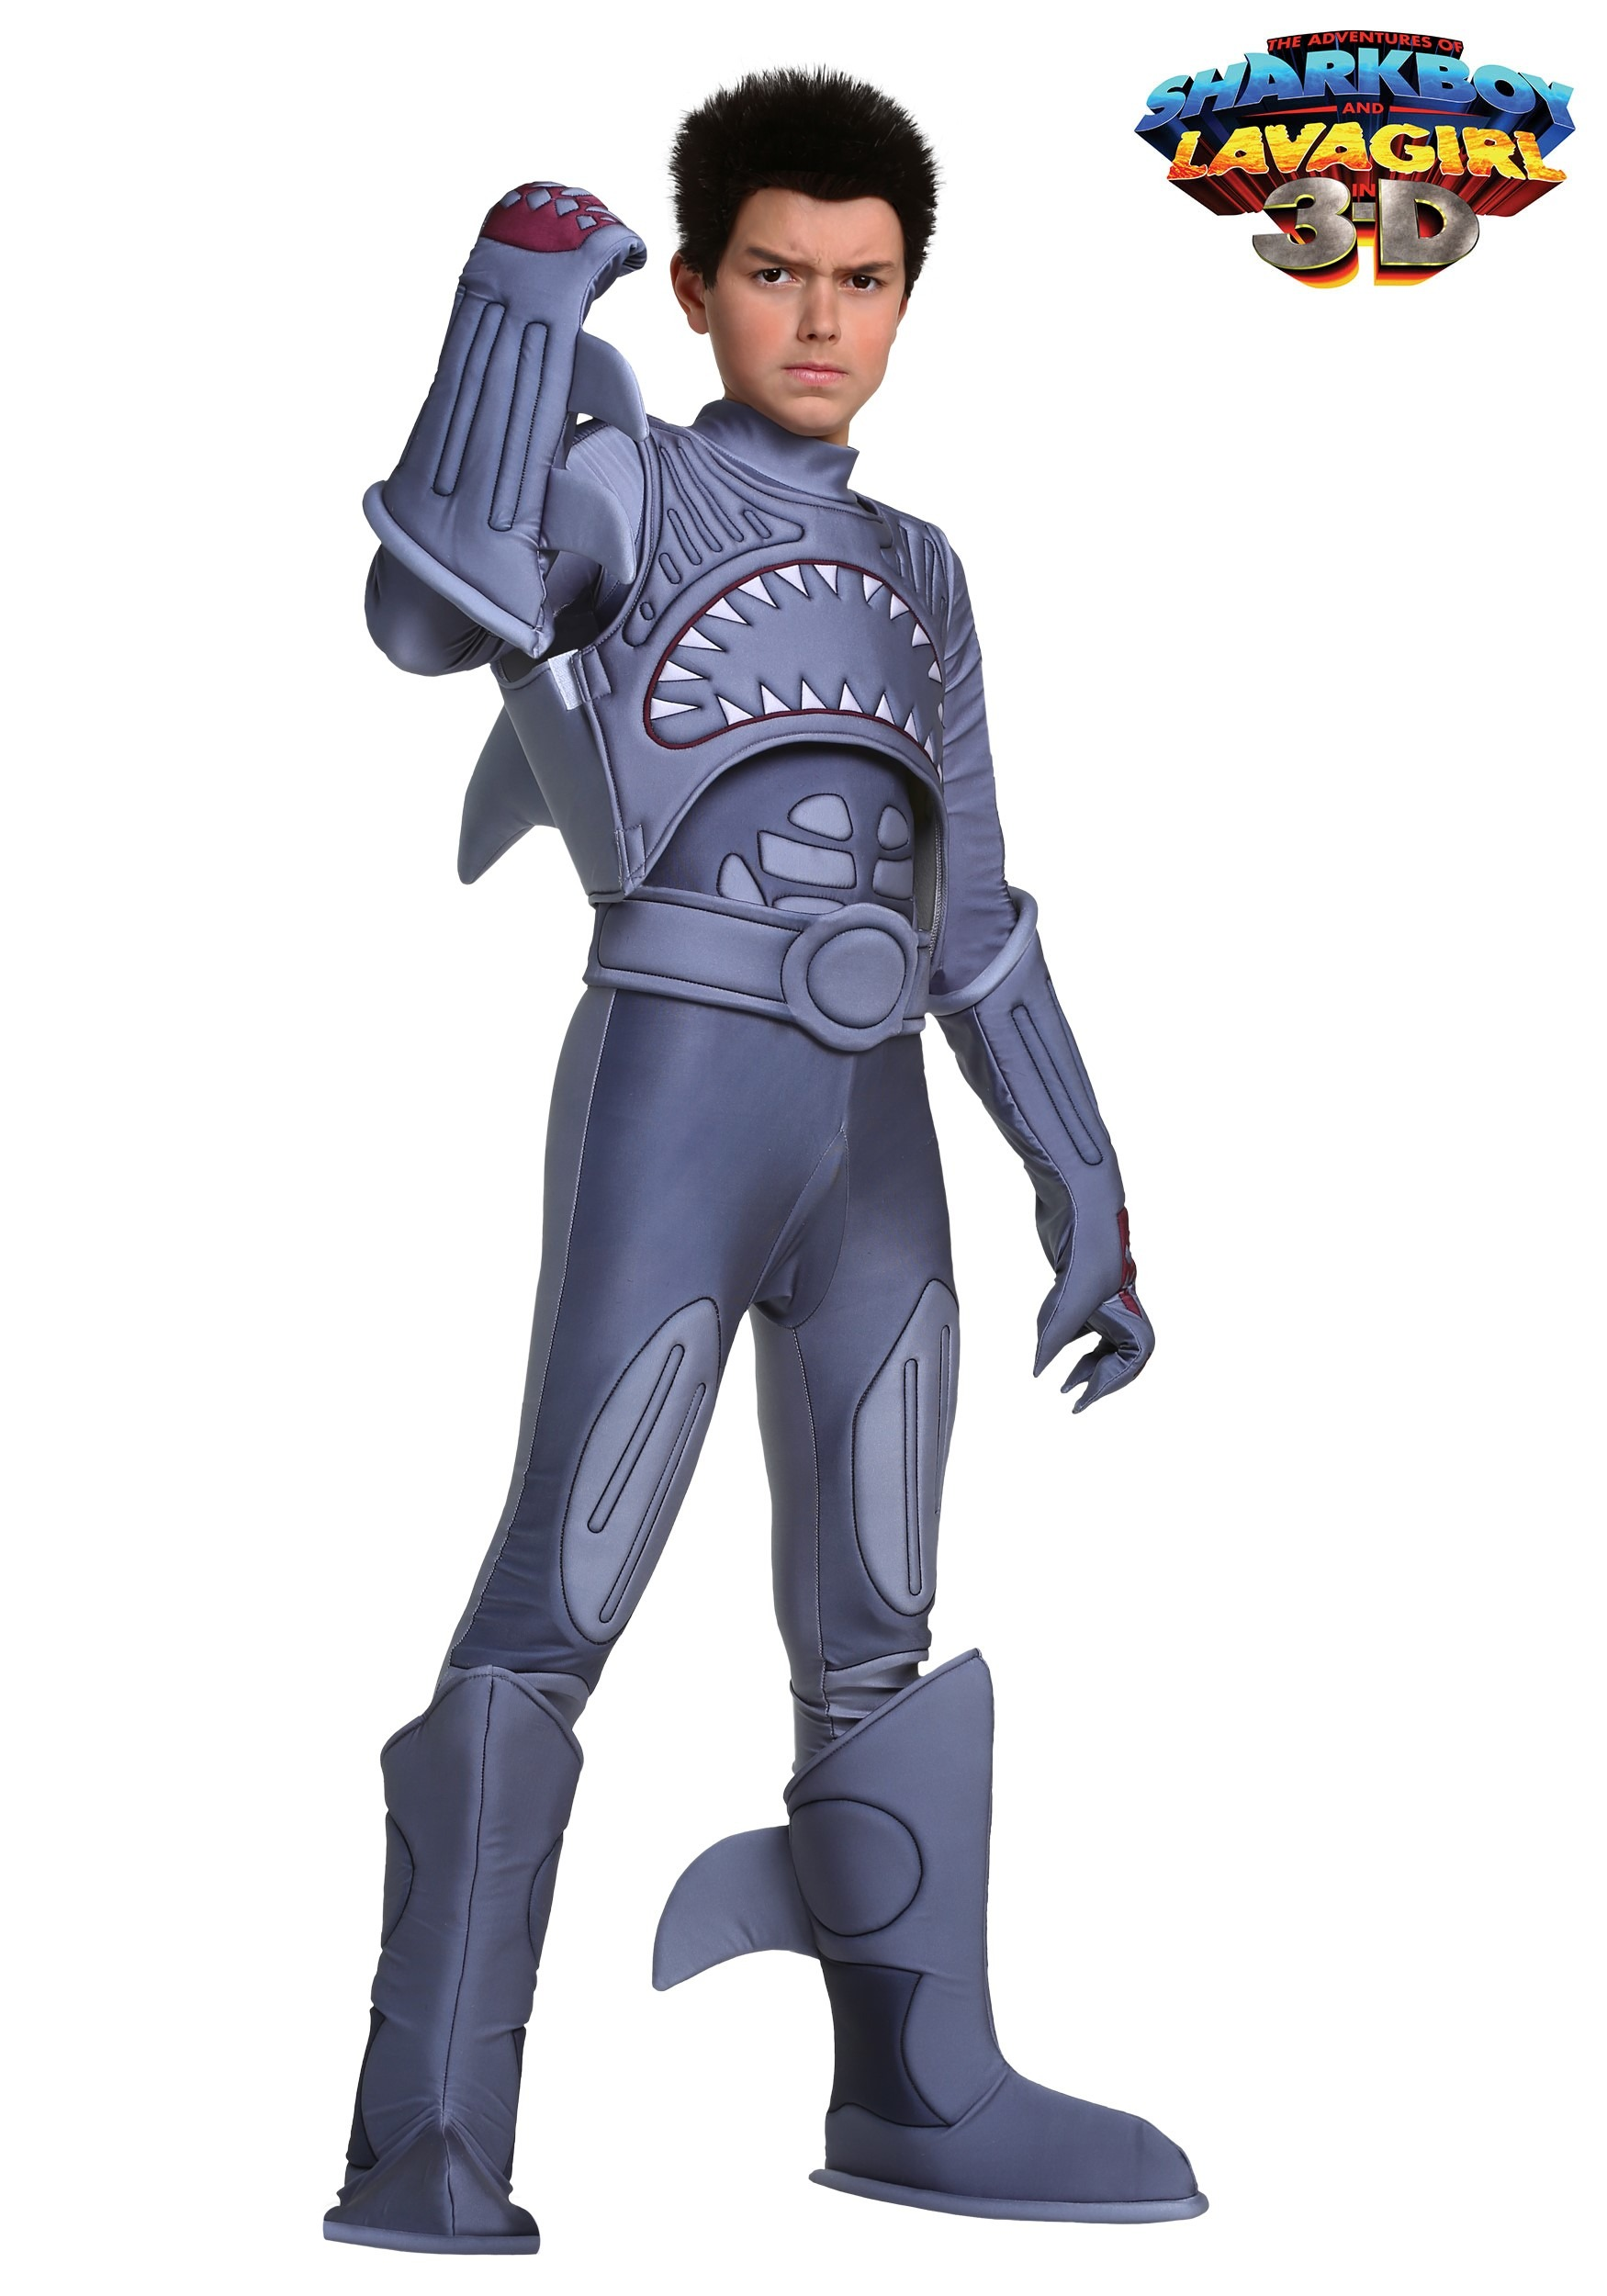 Sharkboy Boys Costume  sc 1 st  Halloween Costumes & Sharkboy Costume for Boys